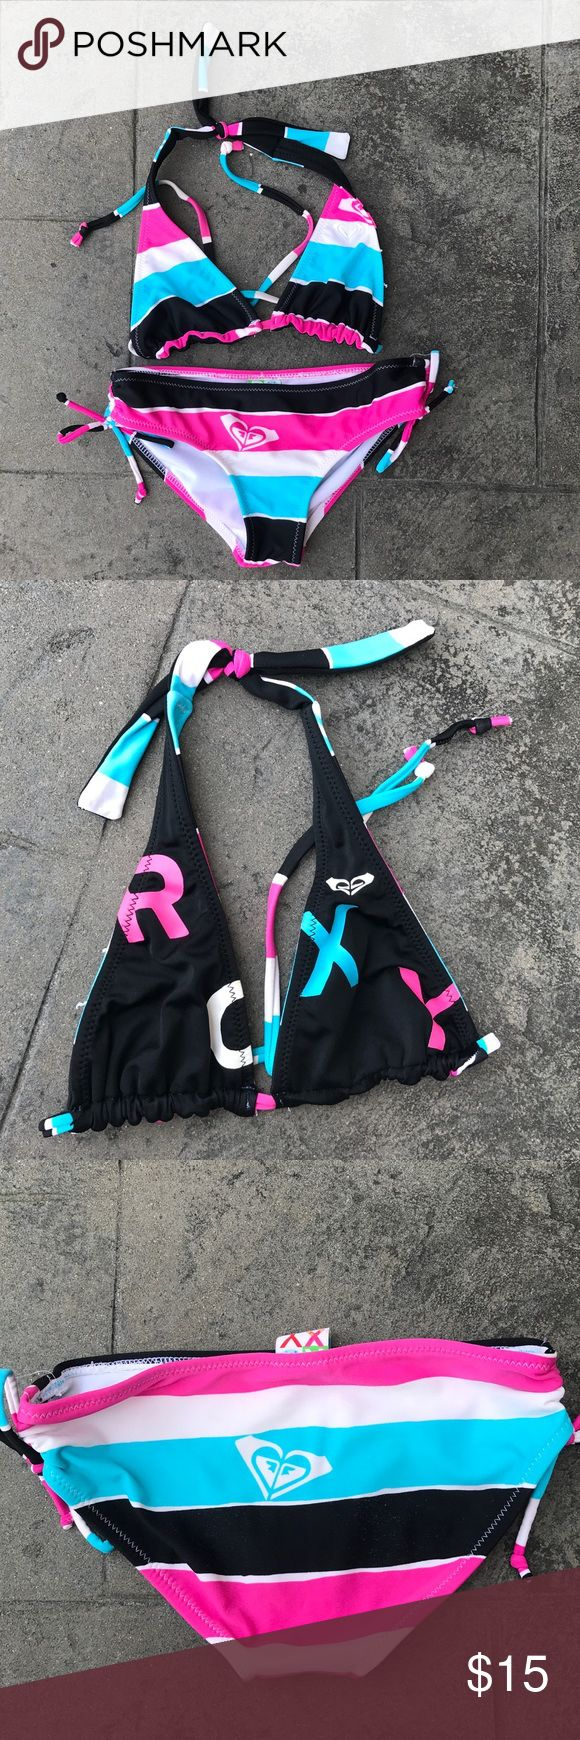 ROXY girl's swimsuit ROXY girl's 2-piece swimsuit, size 10.  Black, hot pink, white and turquoise.  Top is reversible, with one side in stripes and the other with ROXY lettering.  Super cute and fun!  Great condition. Smoke-free/pet-free home. Roxy Swim Bikinis